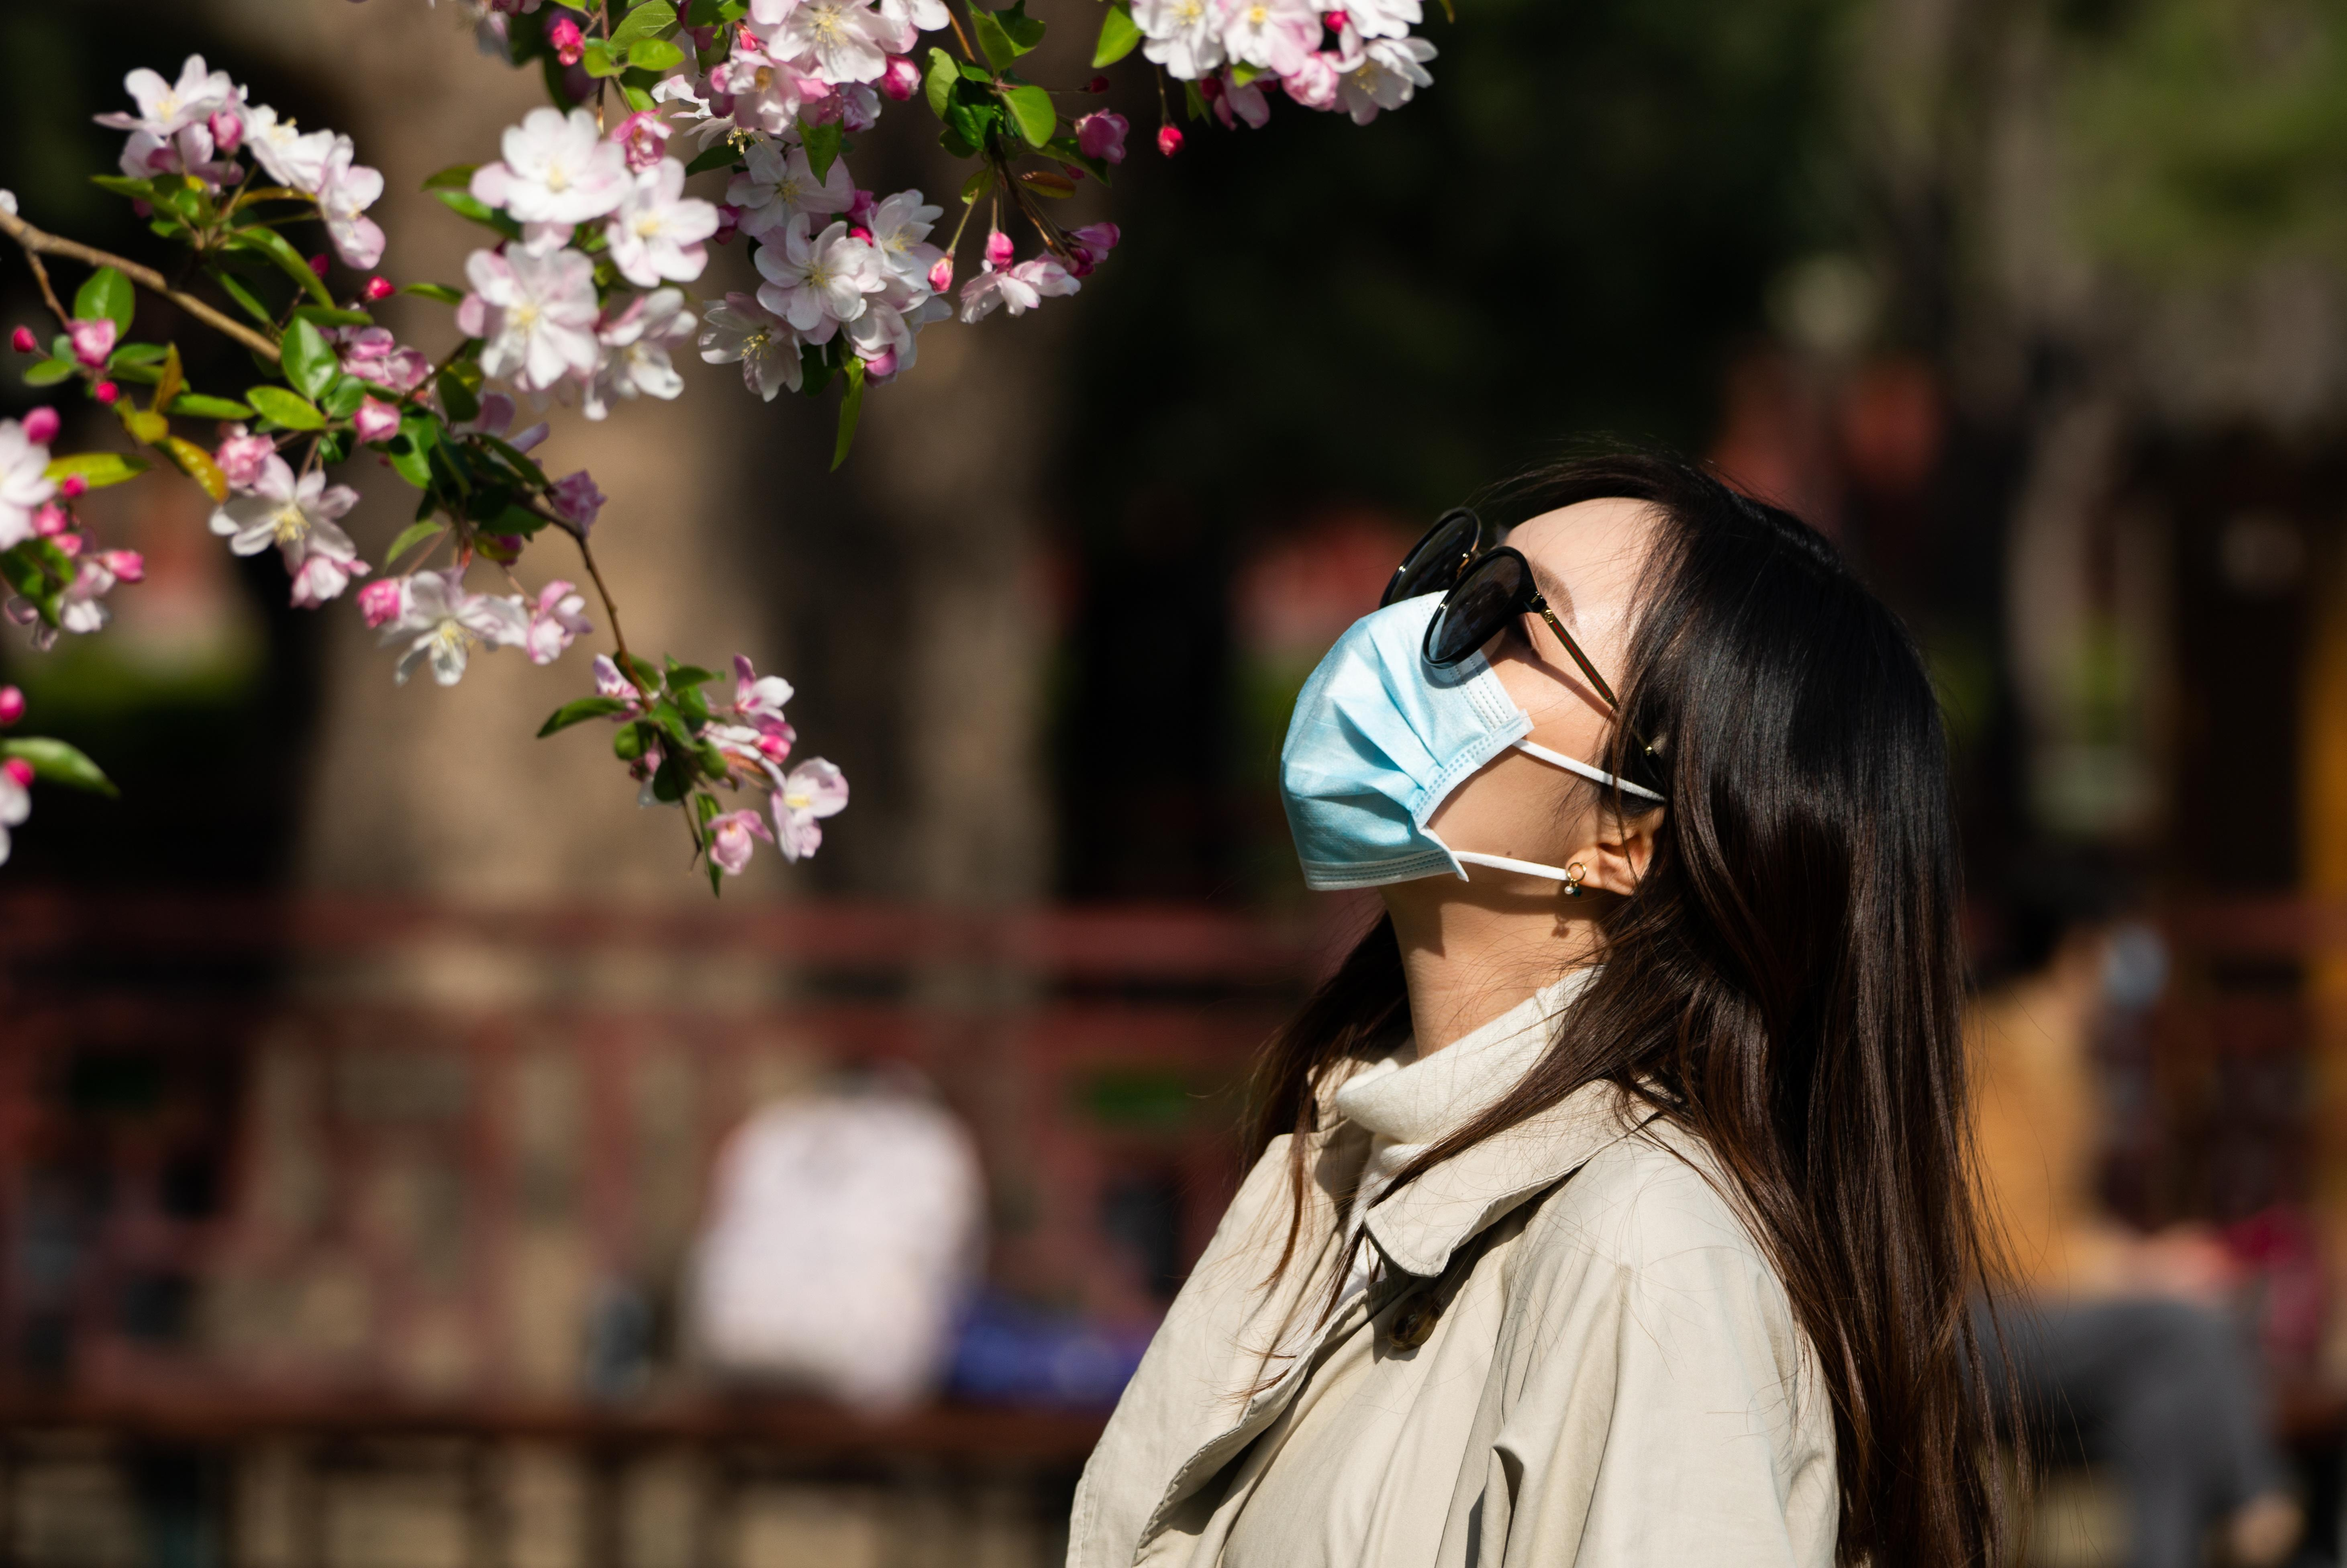 BEIJING, CHINA - APRIL 7, 2020: A young woman in a face mask admires tree blossoms at Ritan Park; the Chinese authorities declaring the spread of the COVID-19 epidemic, on the whole, successfully contained, residents of Beijing began to spend more time outside and visit city parks. Artyom IVanov/TASS (Photo by Artyom Ivanov\TASS via Getty Images)